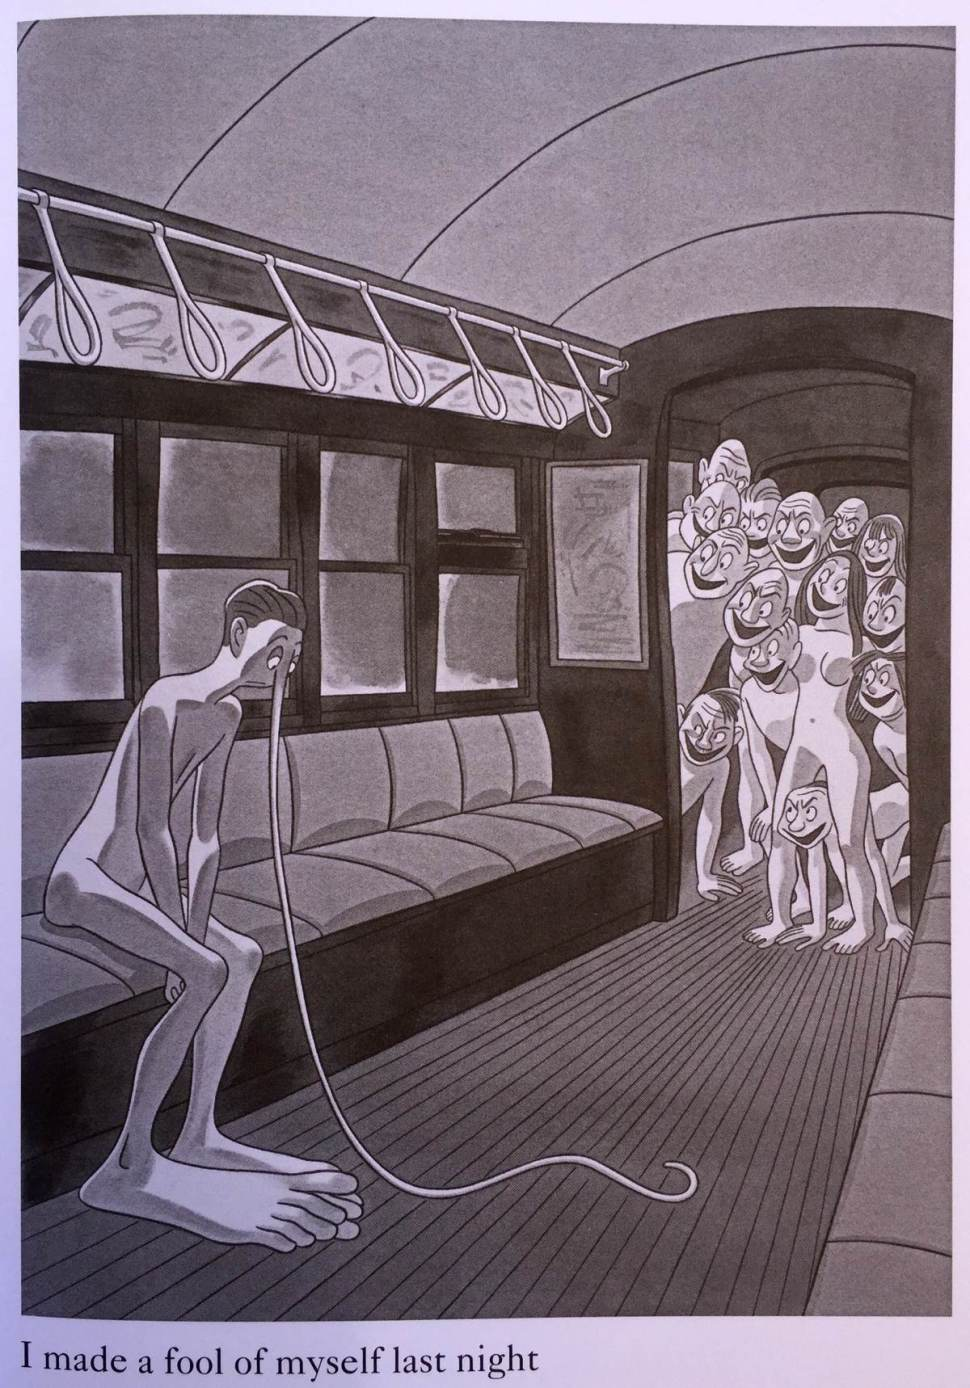 Gag Cartoons with Naked People: Abner Deans What Am I